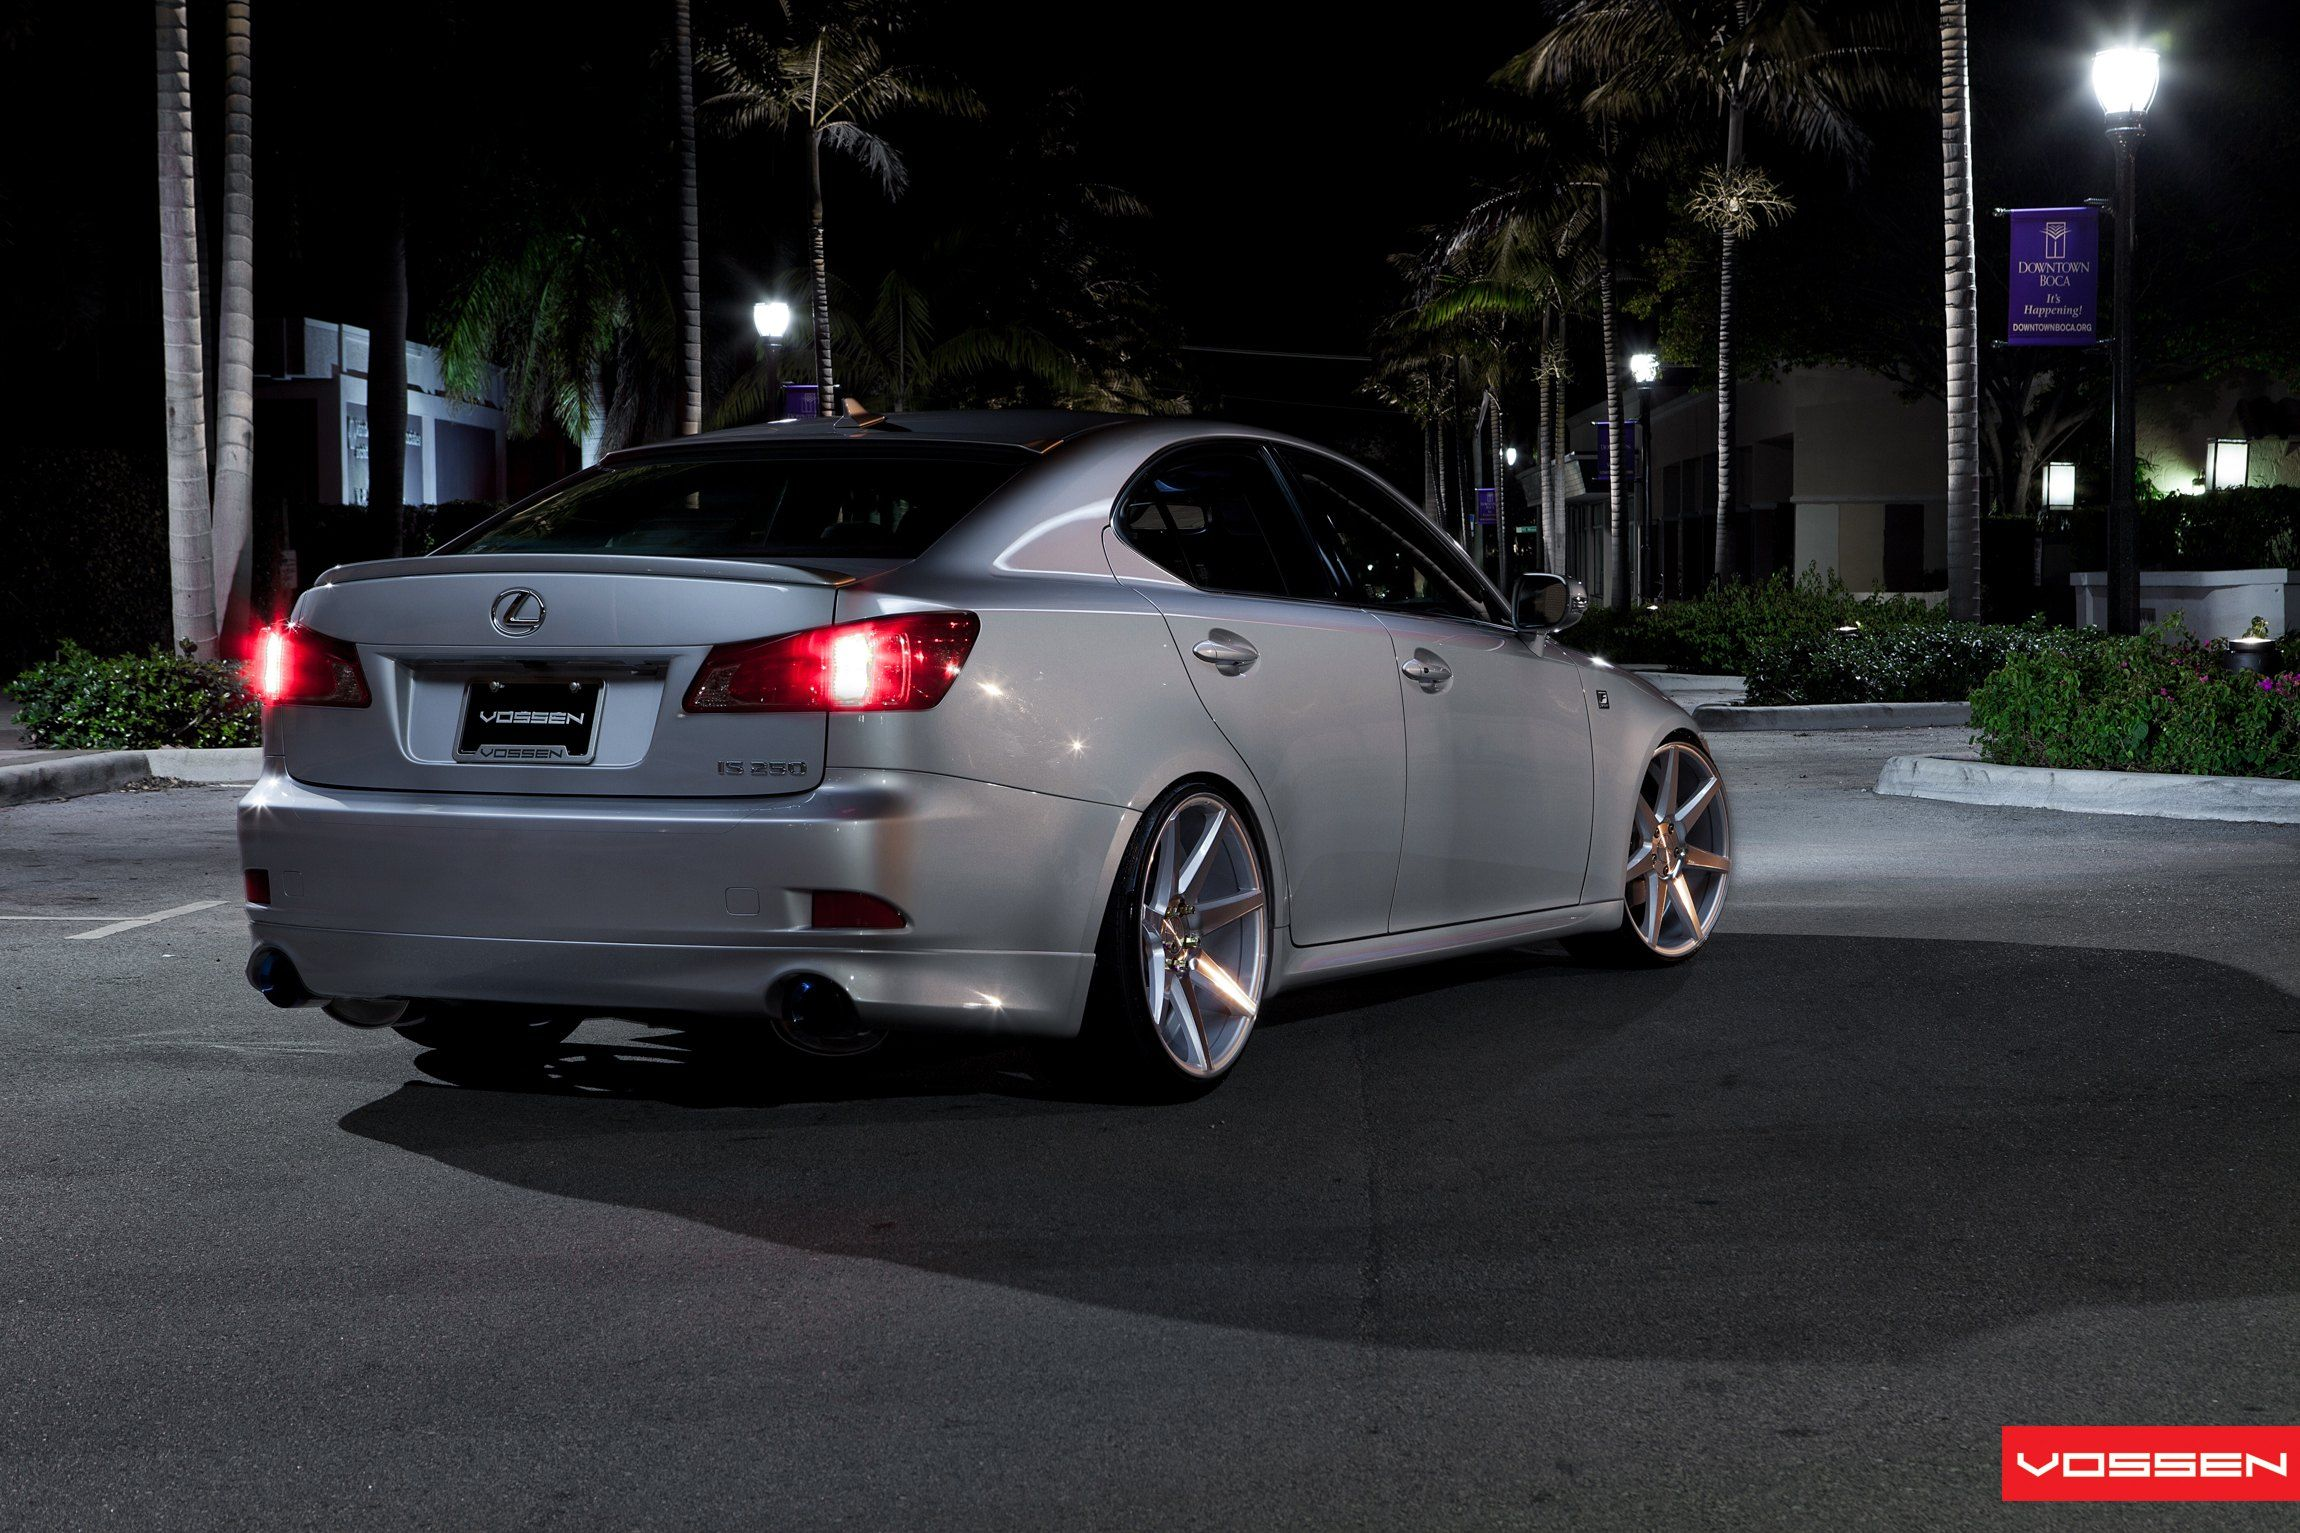 Lowered Lexus IS350 Gets Custom Touches and Vossen Rims